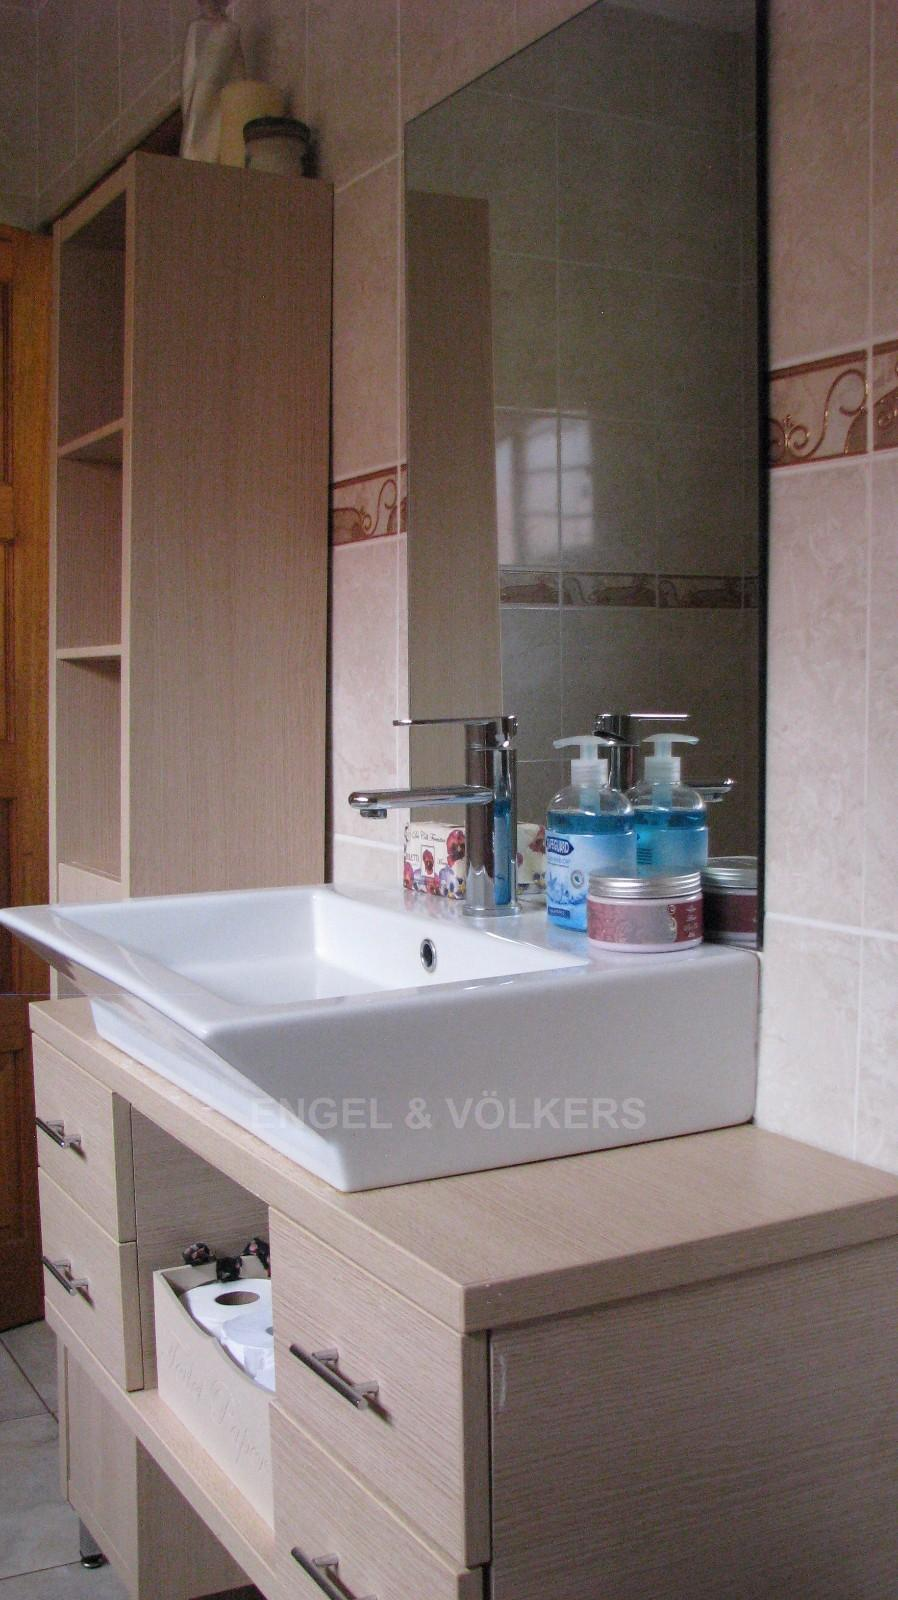 House in Melodie A/h - Built in vanity with basin